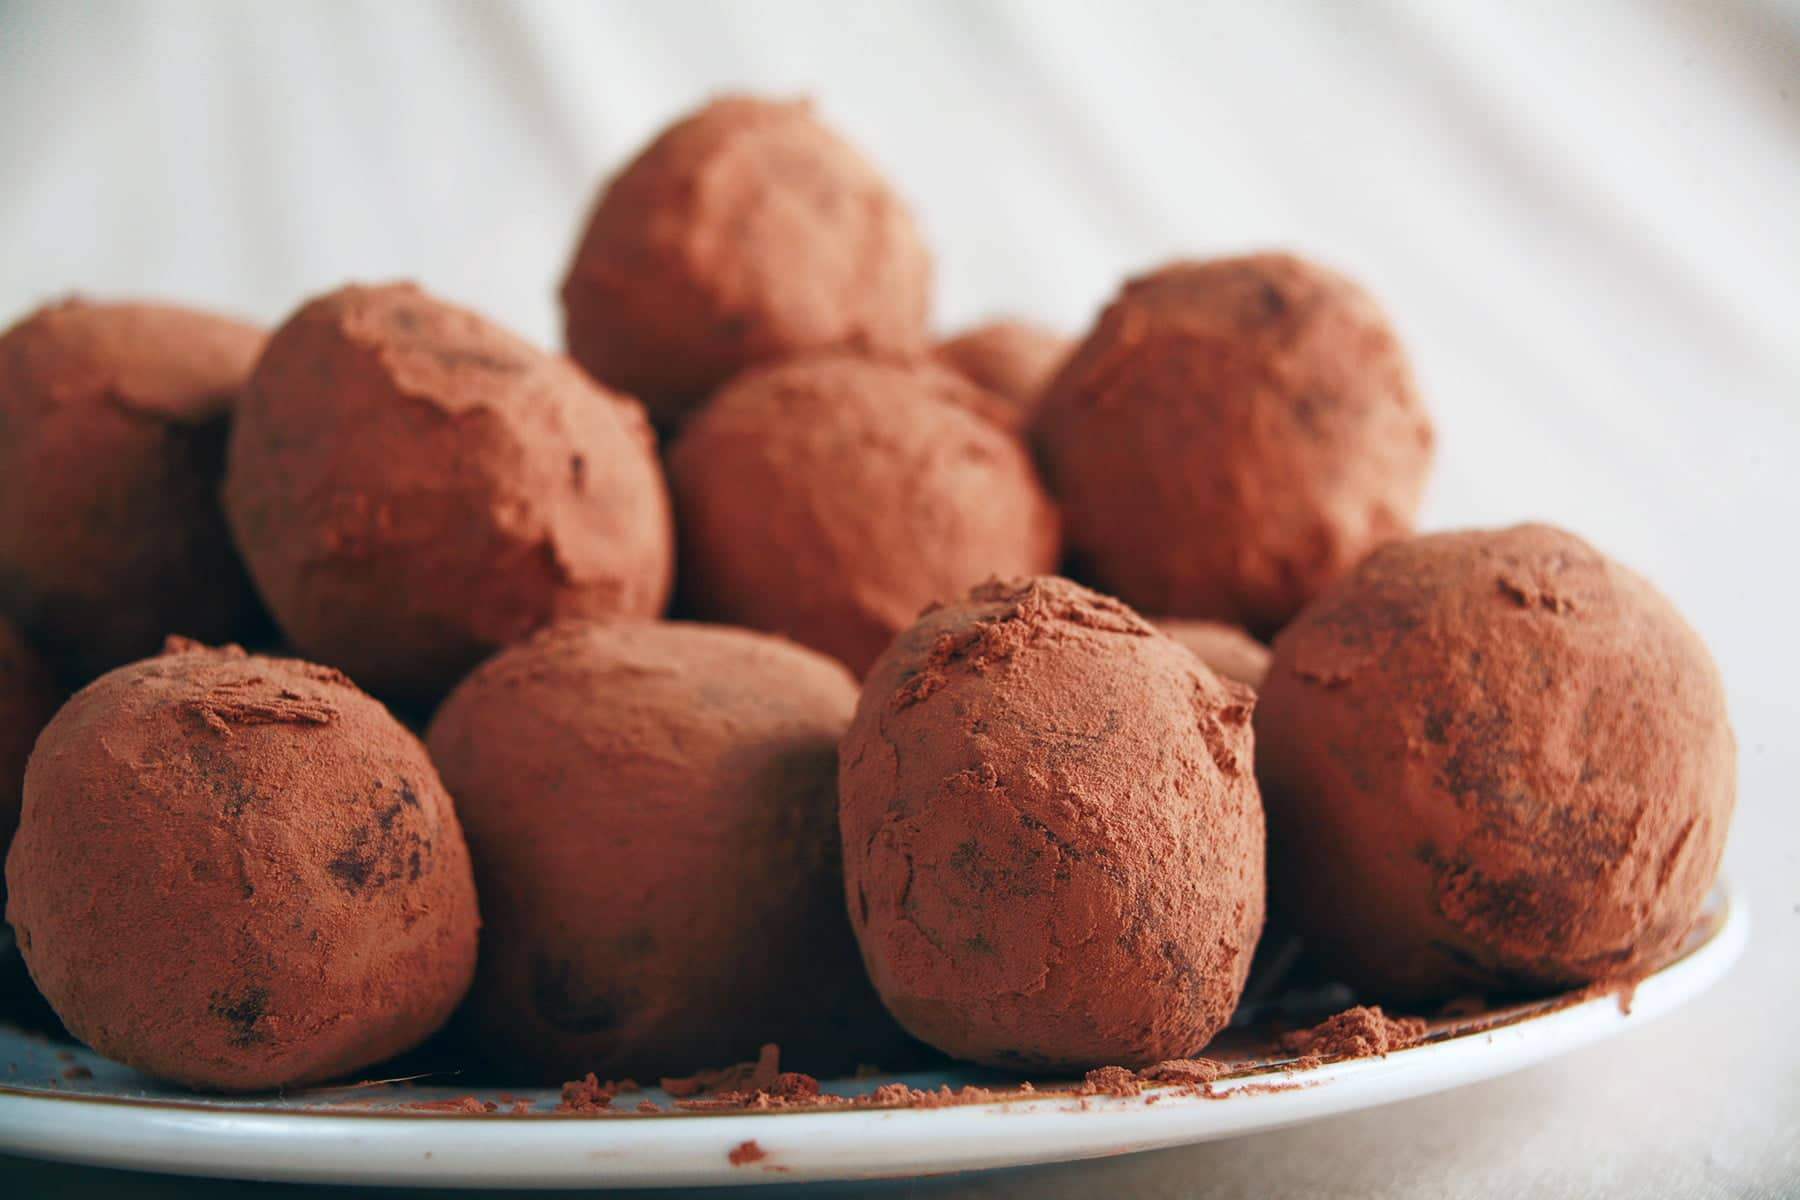 A close up view of a small white plate, piled high with sugar free chocolate chip truffles.